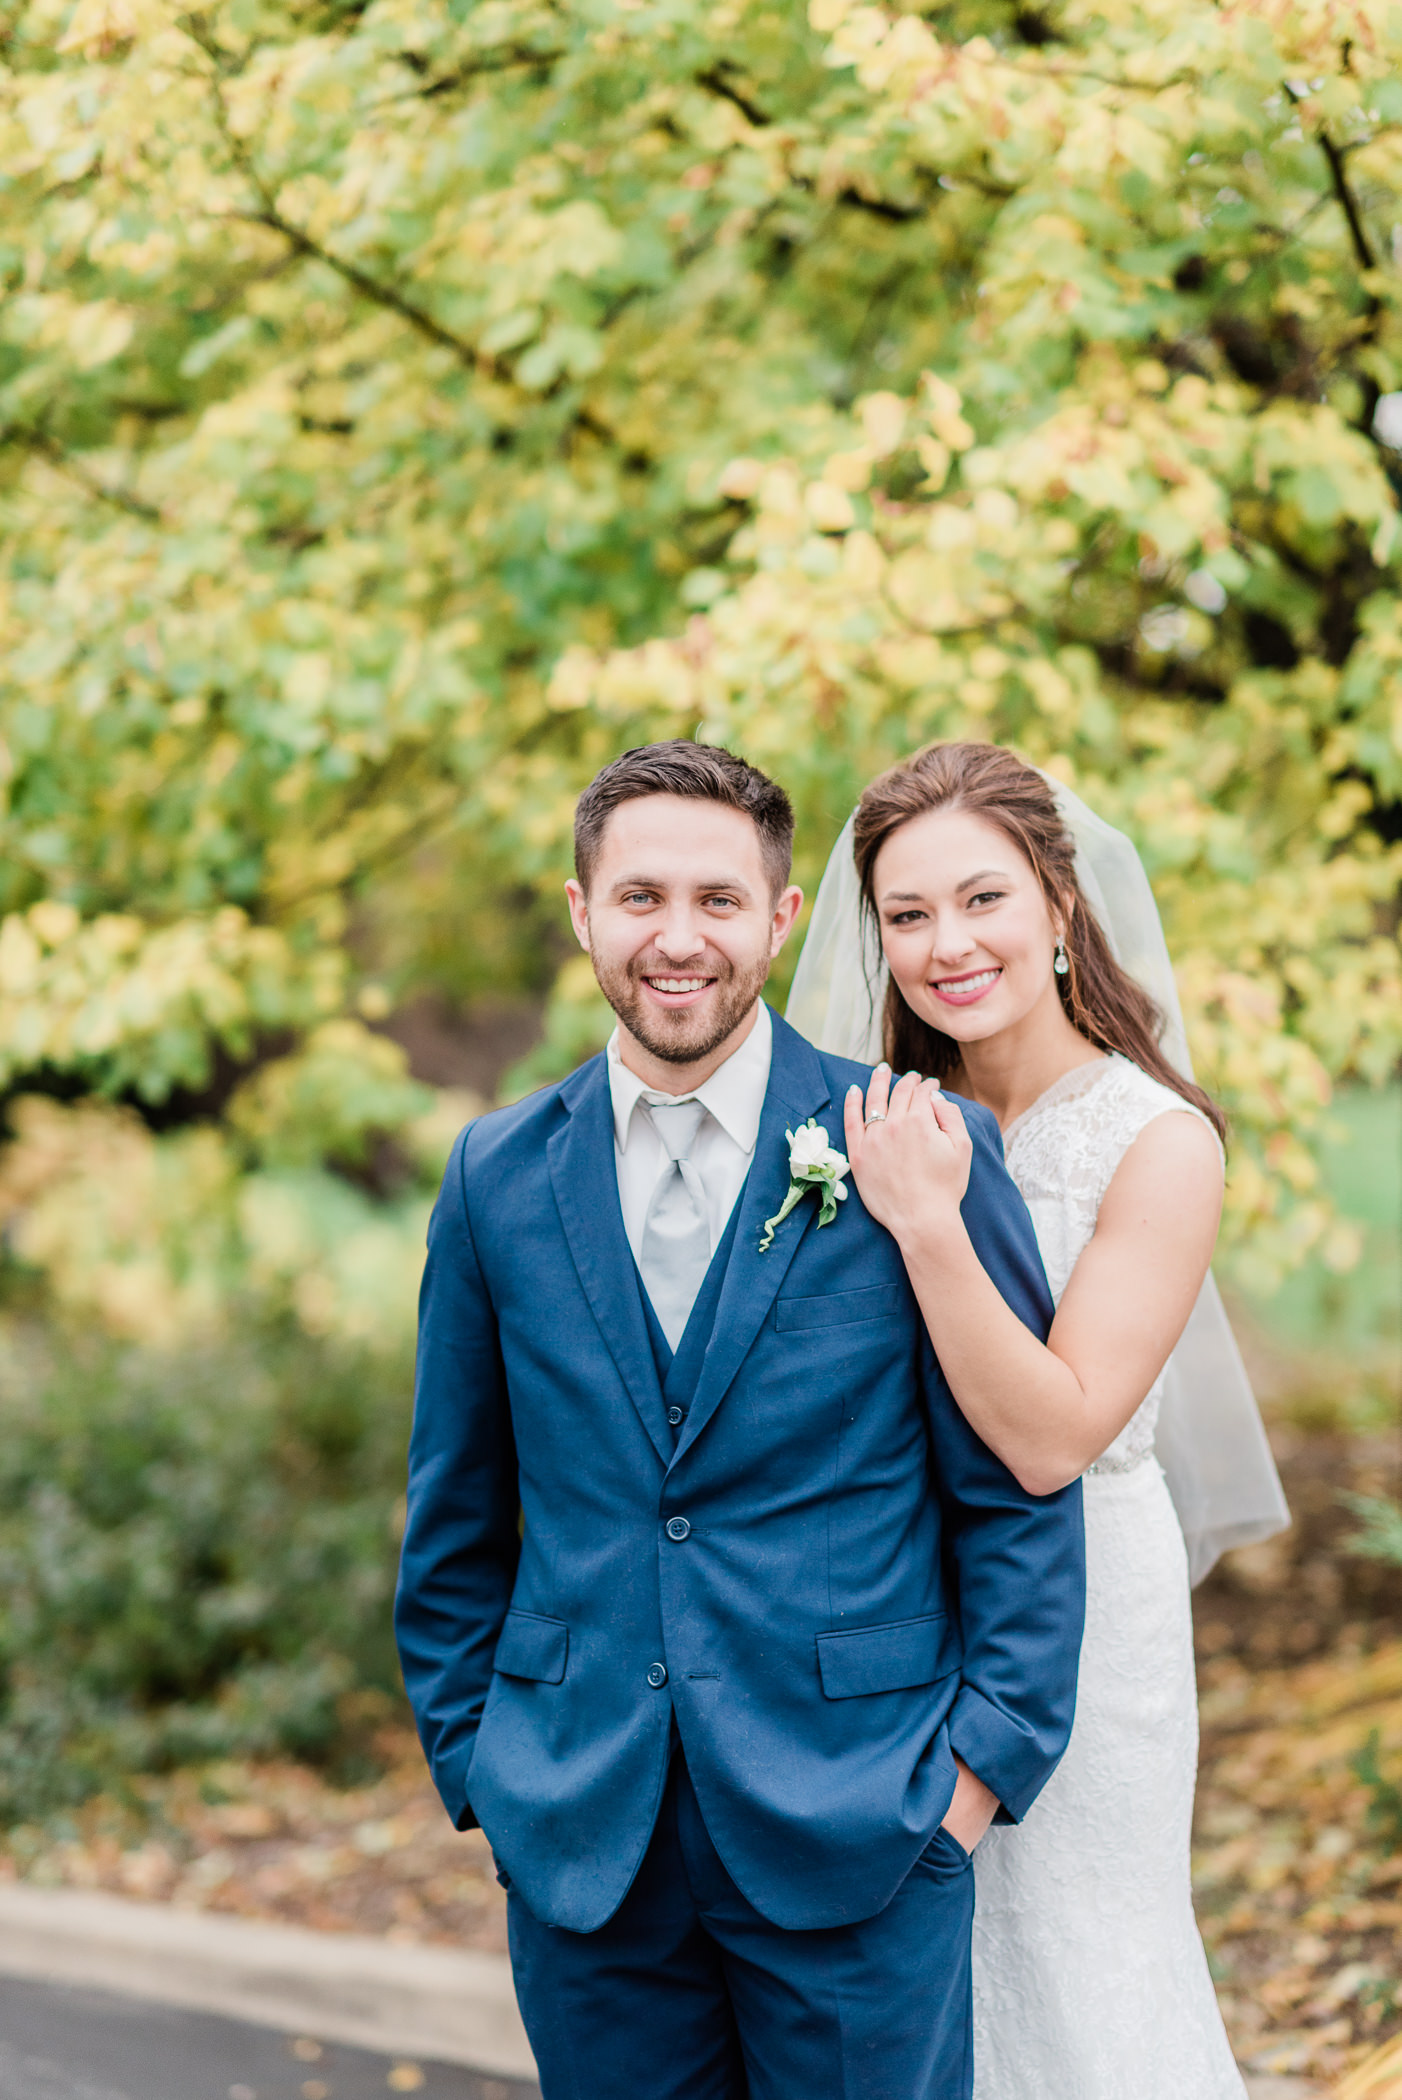 Wisconsin City Club Wedding Photographers - Larissa Marie Photography